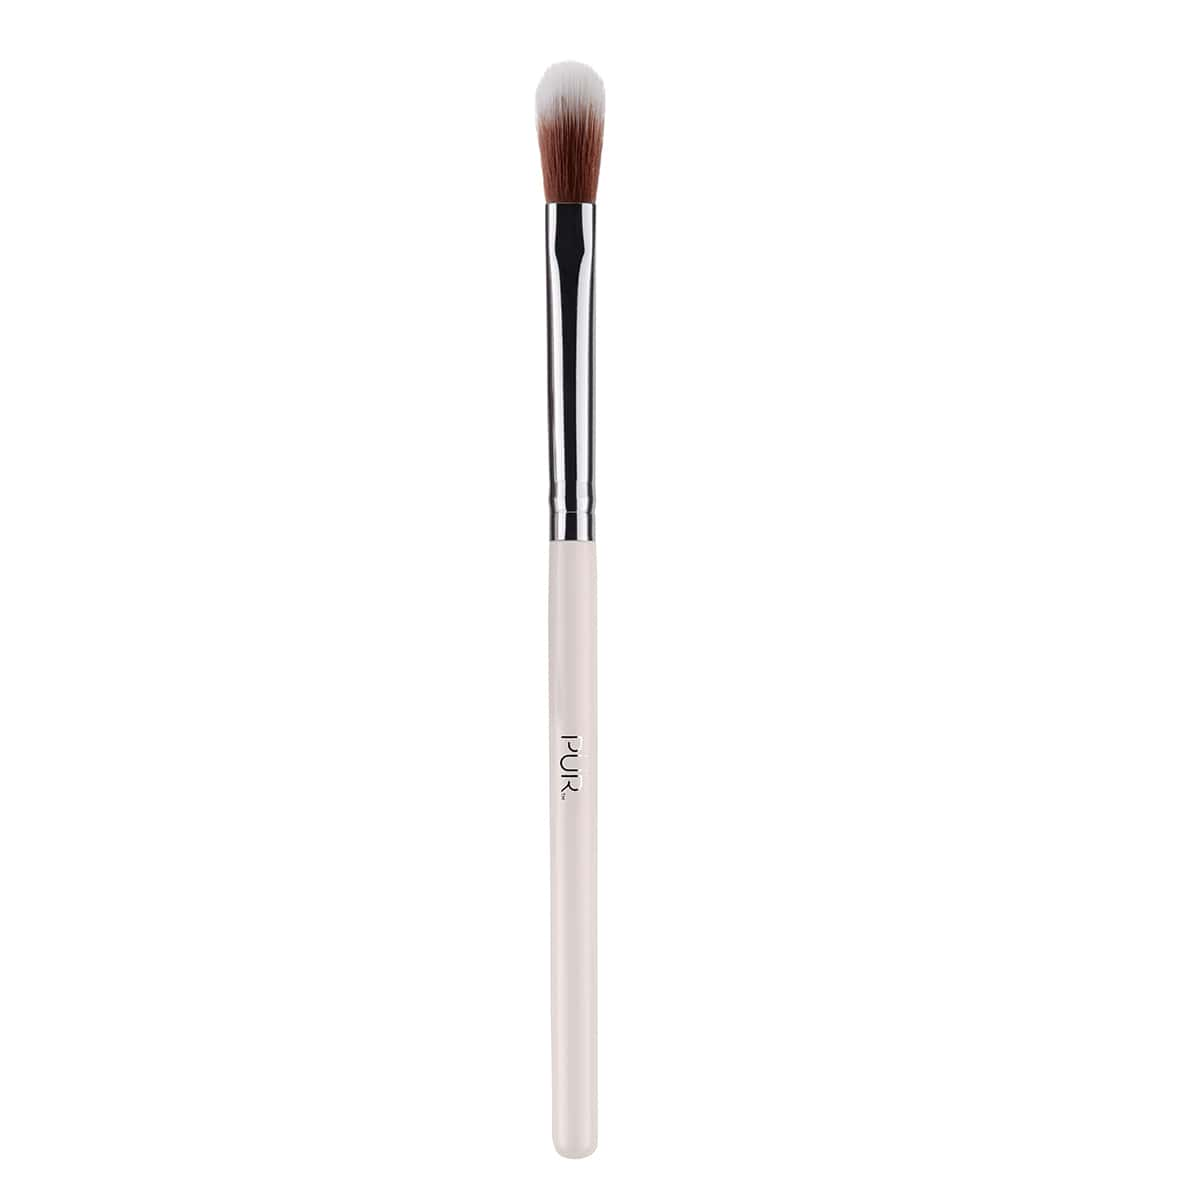 Blending Crease Brush